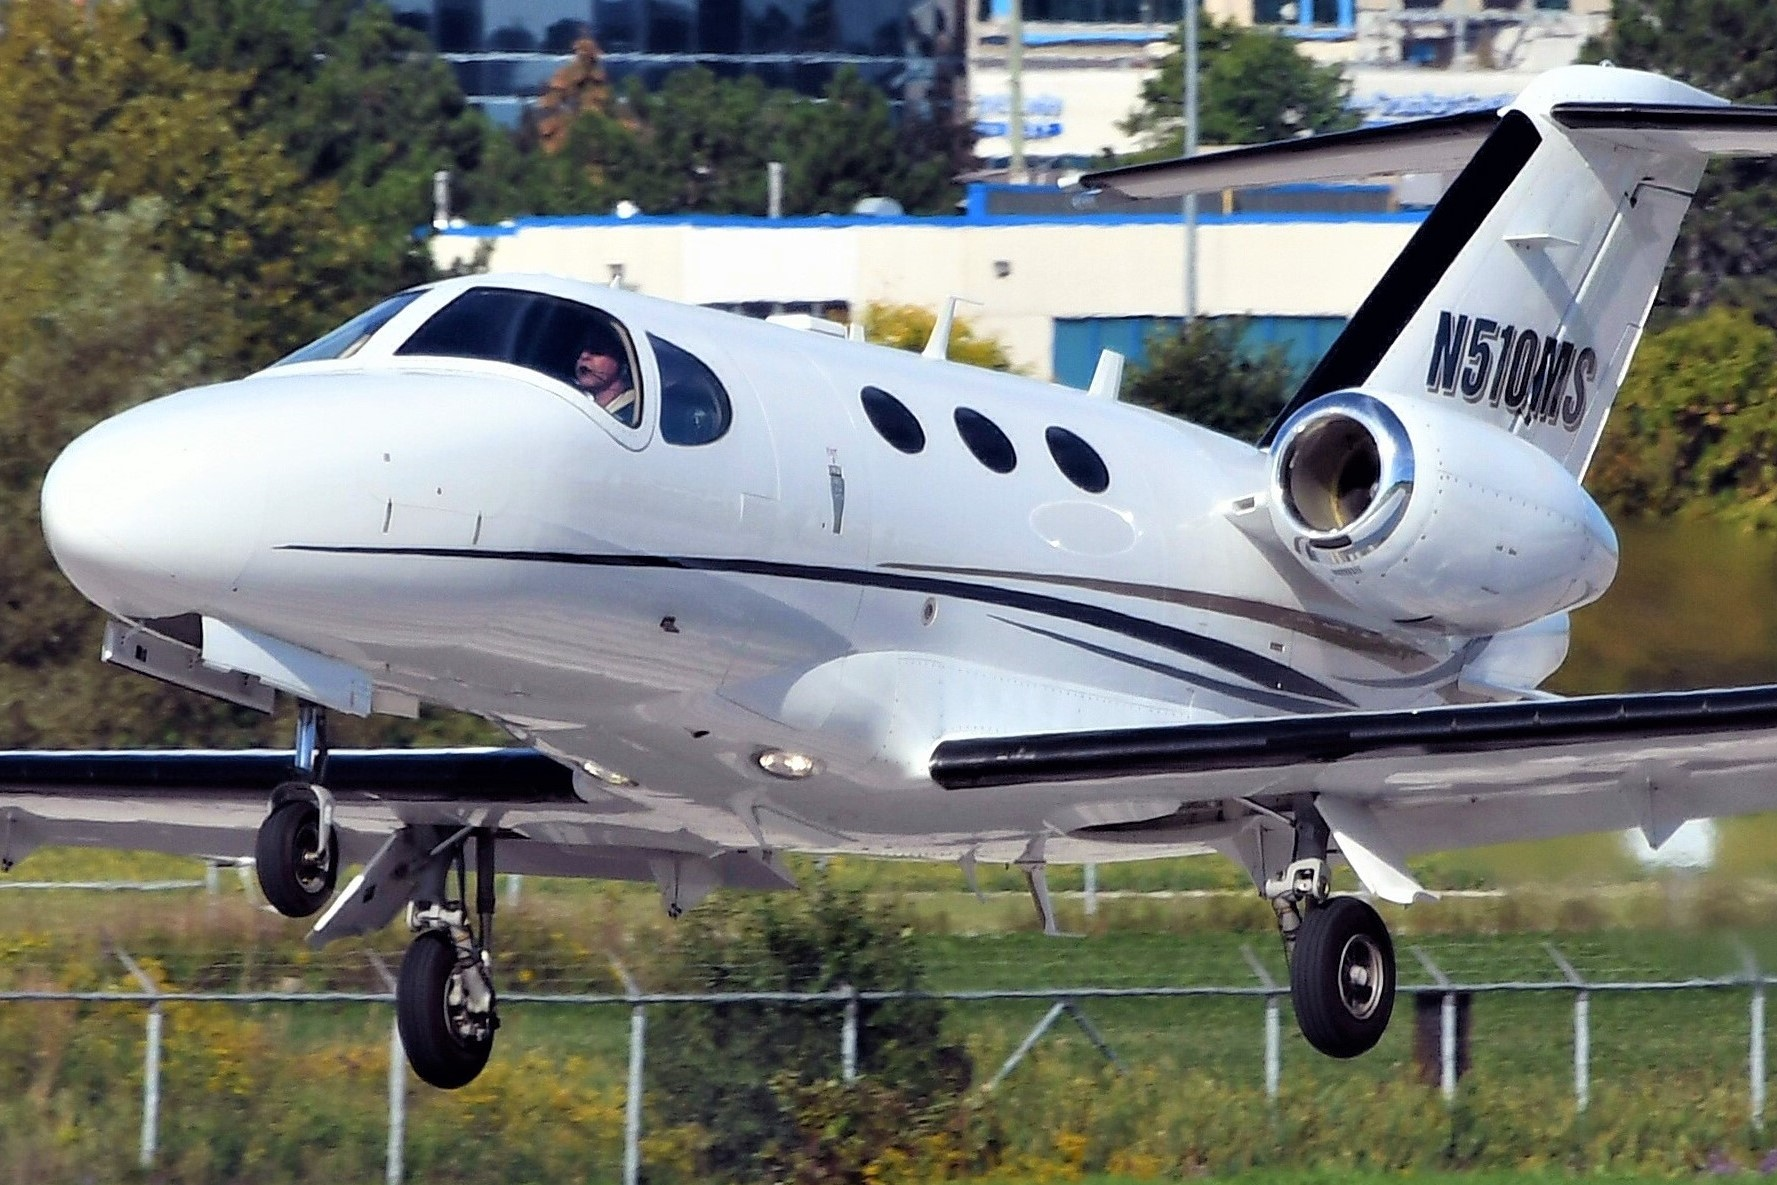 A Cessna Citation Mustang spotted at Toronto Buttonville Municipal Airport. Photo by Frederick K. Larkin